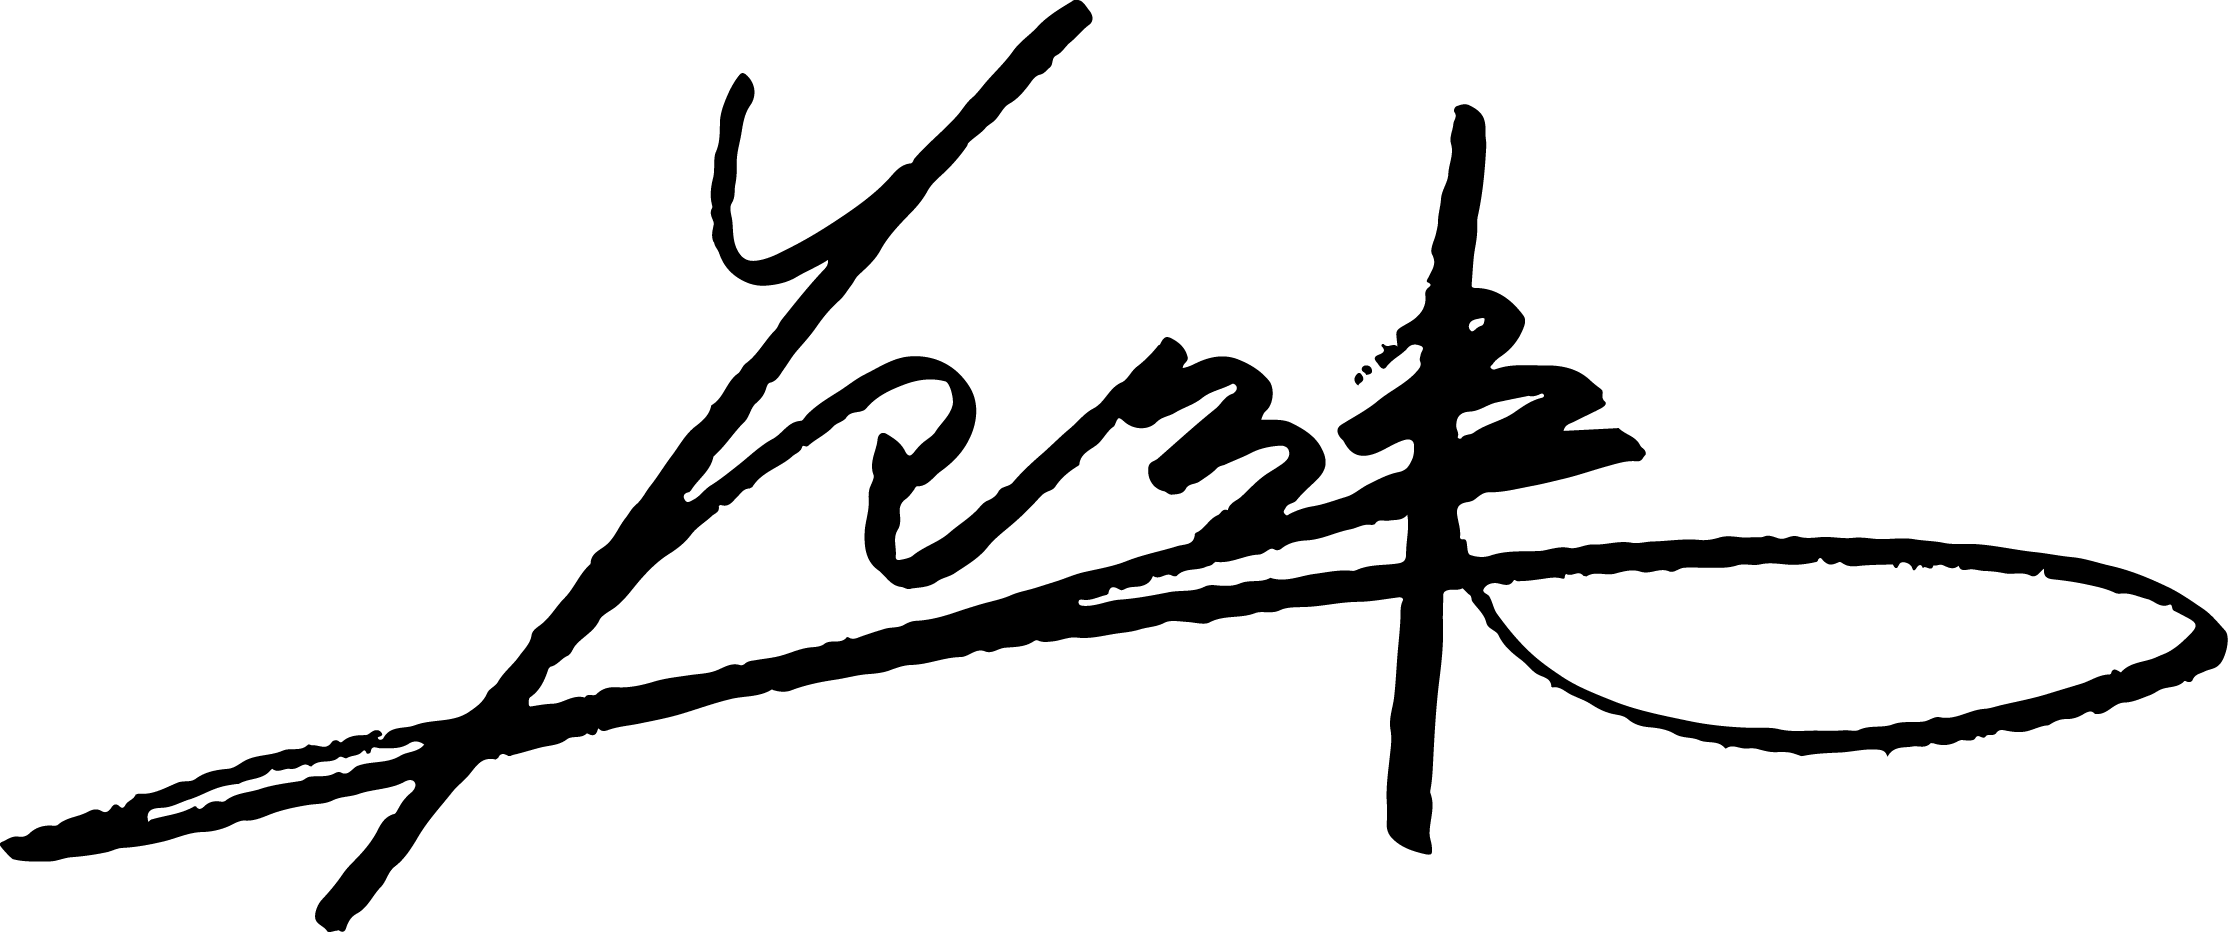 Fenway Fan Signature